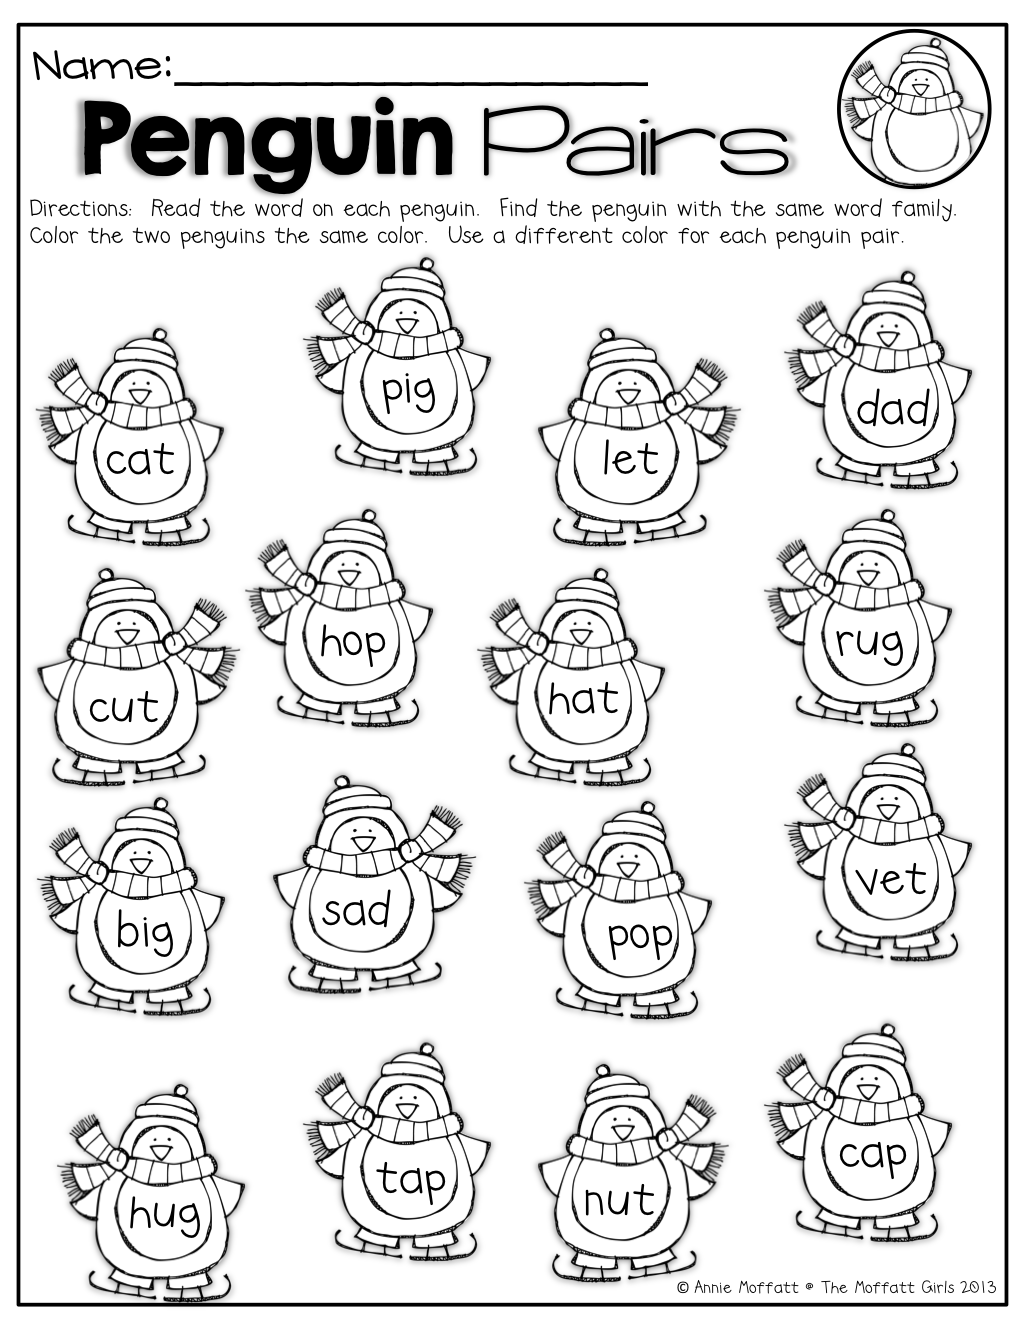 Penguin Pairs Find And Color The Penguins With The Same Word Family The Same Color Such A Fun